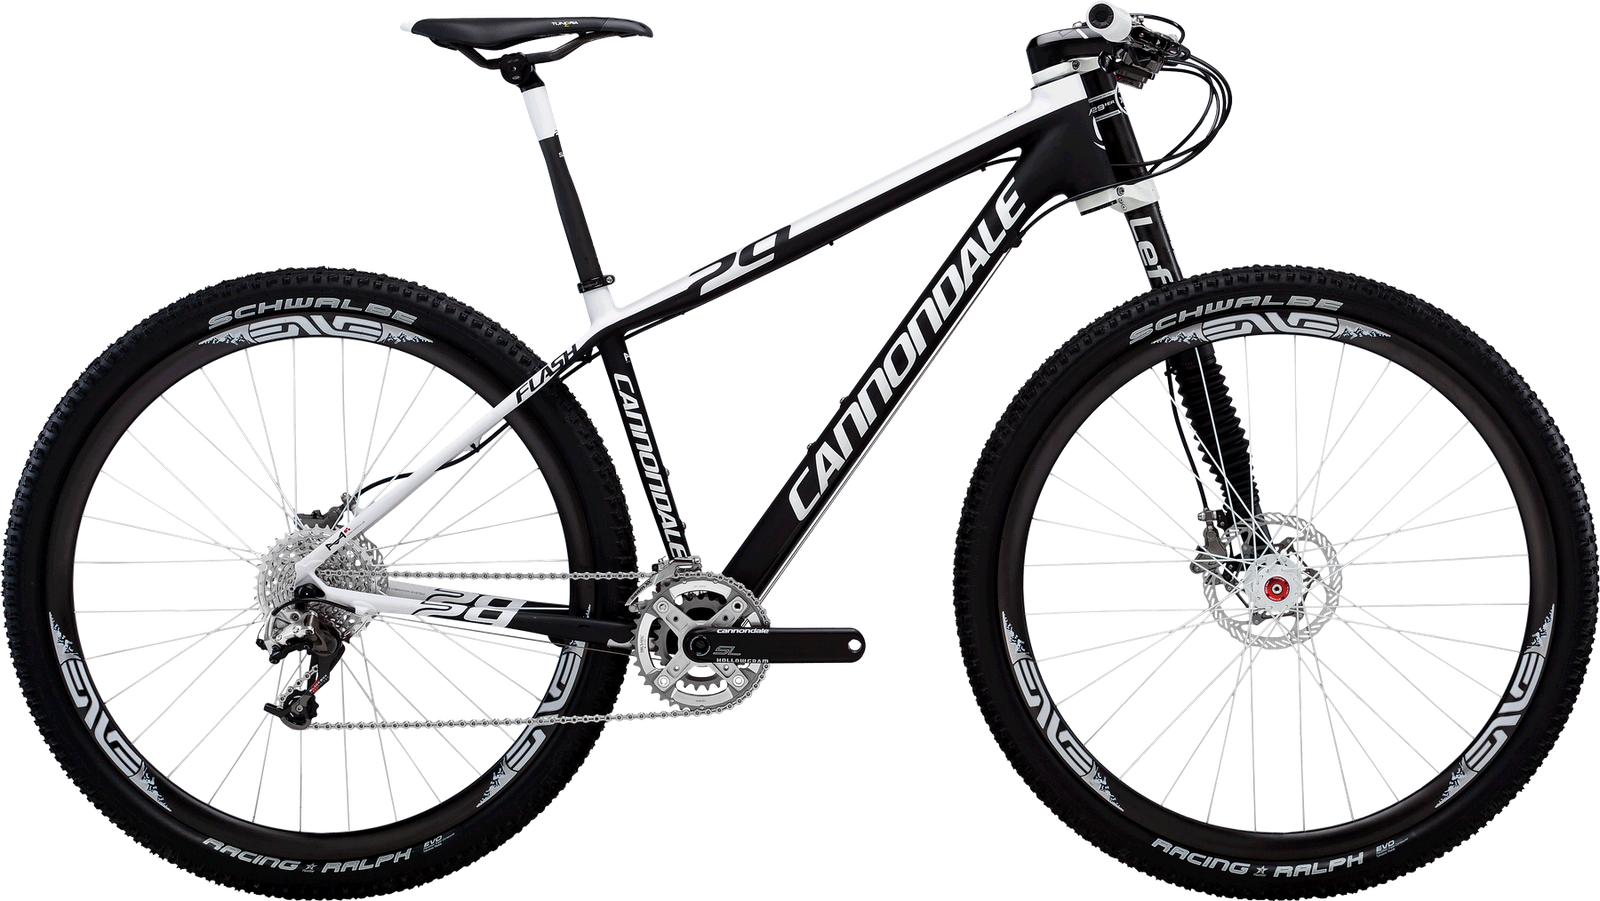 Cuadros 29er Mtb 29er Cannondale Flash Carbon 29er Ultimate